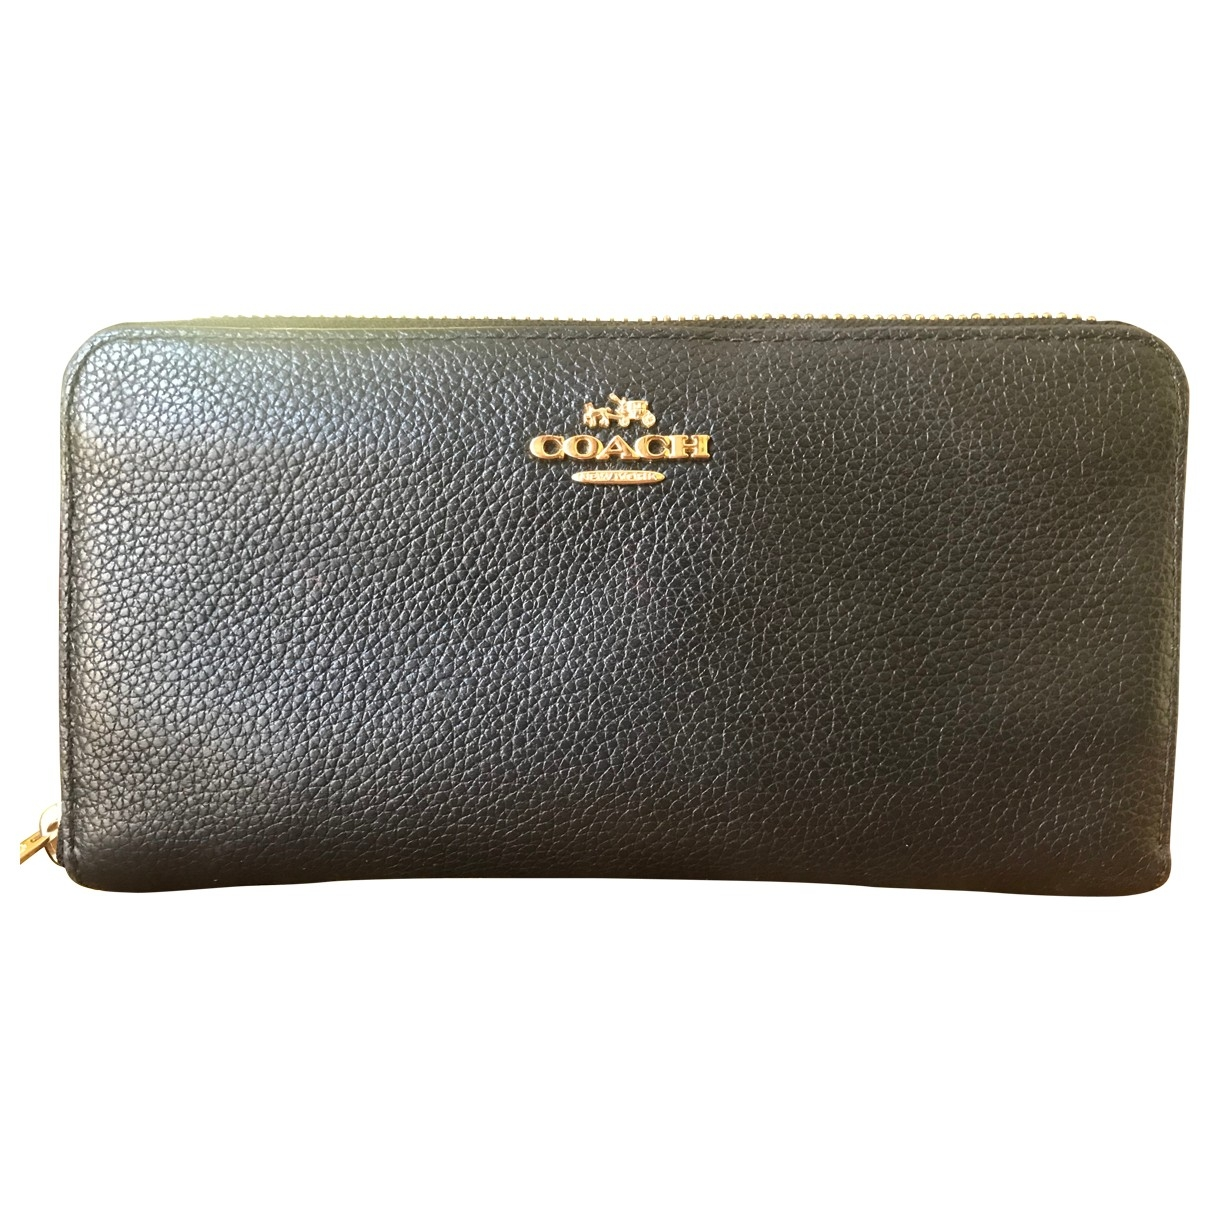 Coach \N Black Leather wallet for Women \N